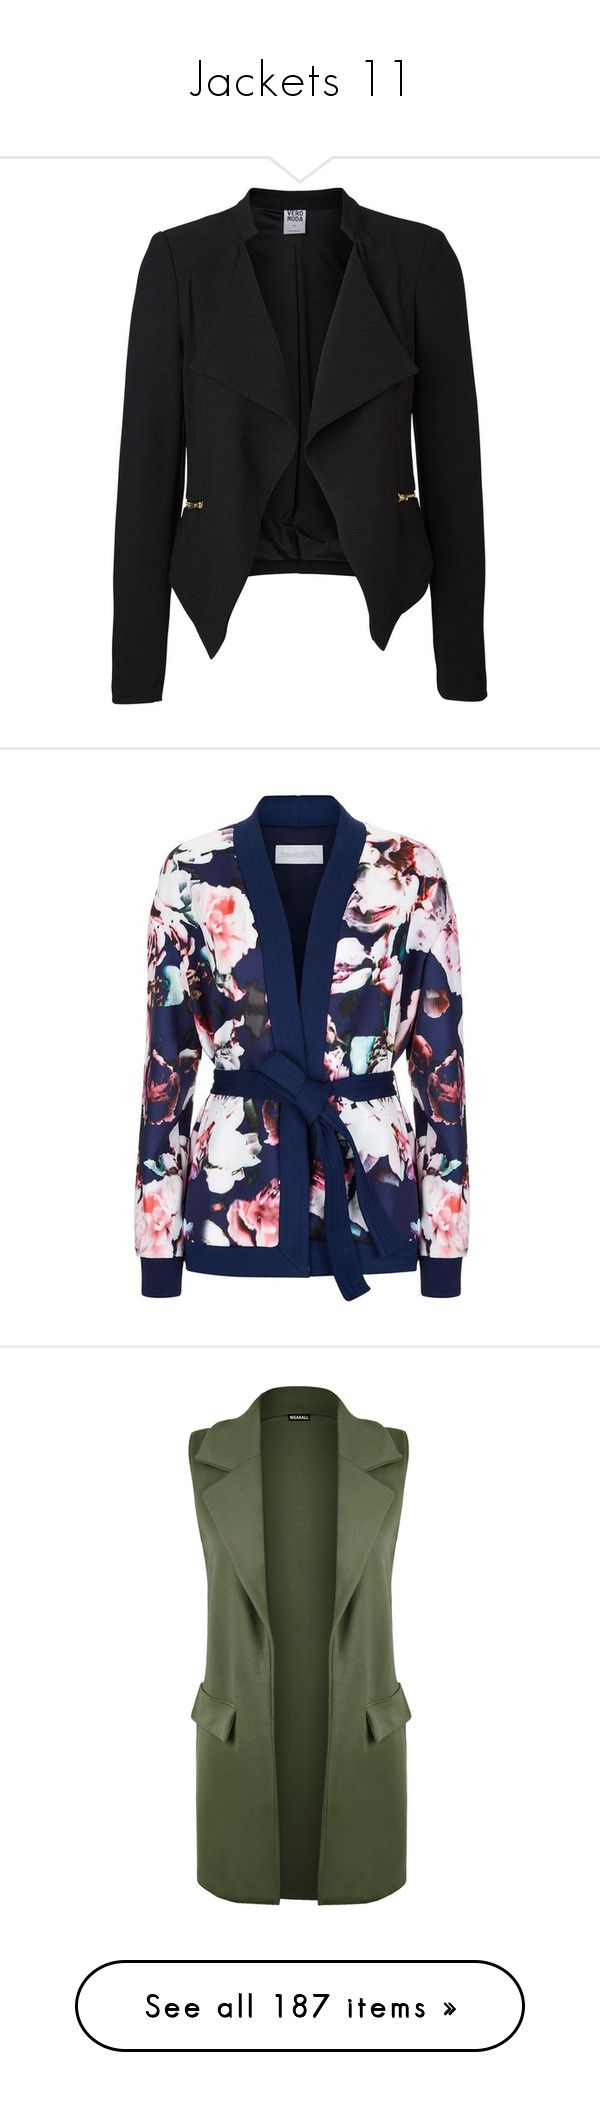 """Jackets 11"" by musicmelody1 on Polyvore featuring outerwear, jackets, blazers, blazer, coats, tops, vero moda, draped blazer, tall jackets and long sleeve blazer"